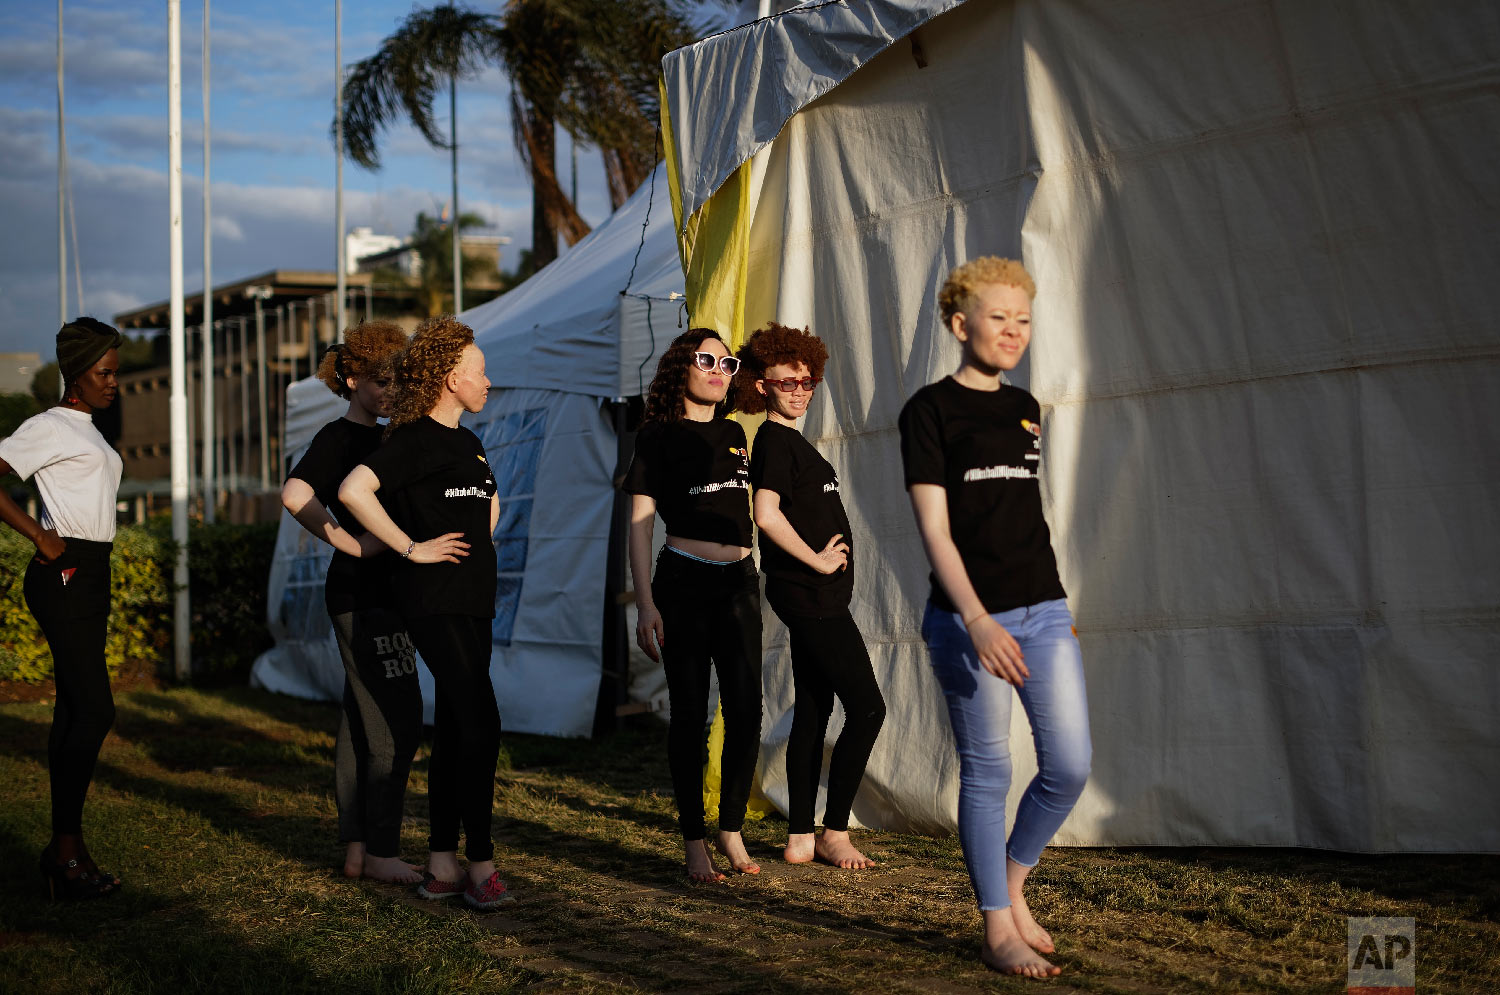 Contestants practice their catwalk moves as they prepare for the Mr. & Miss Albinism East Africa contest, organized by the Albinism Society of Kenya, in Nairobi, Kenya, Nov. 30, 2018. (AP Photo/Ben Curtis)